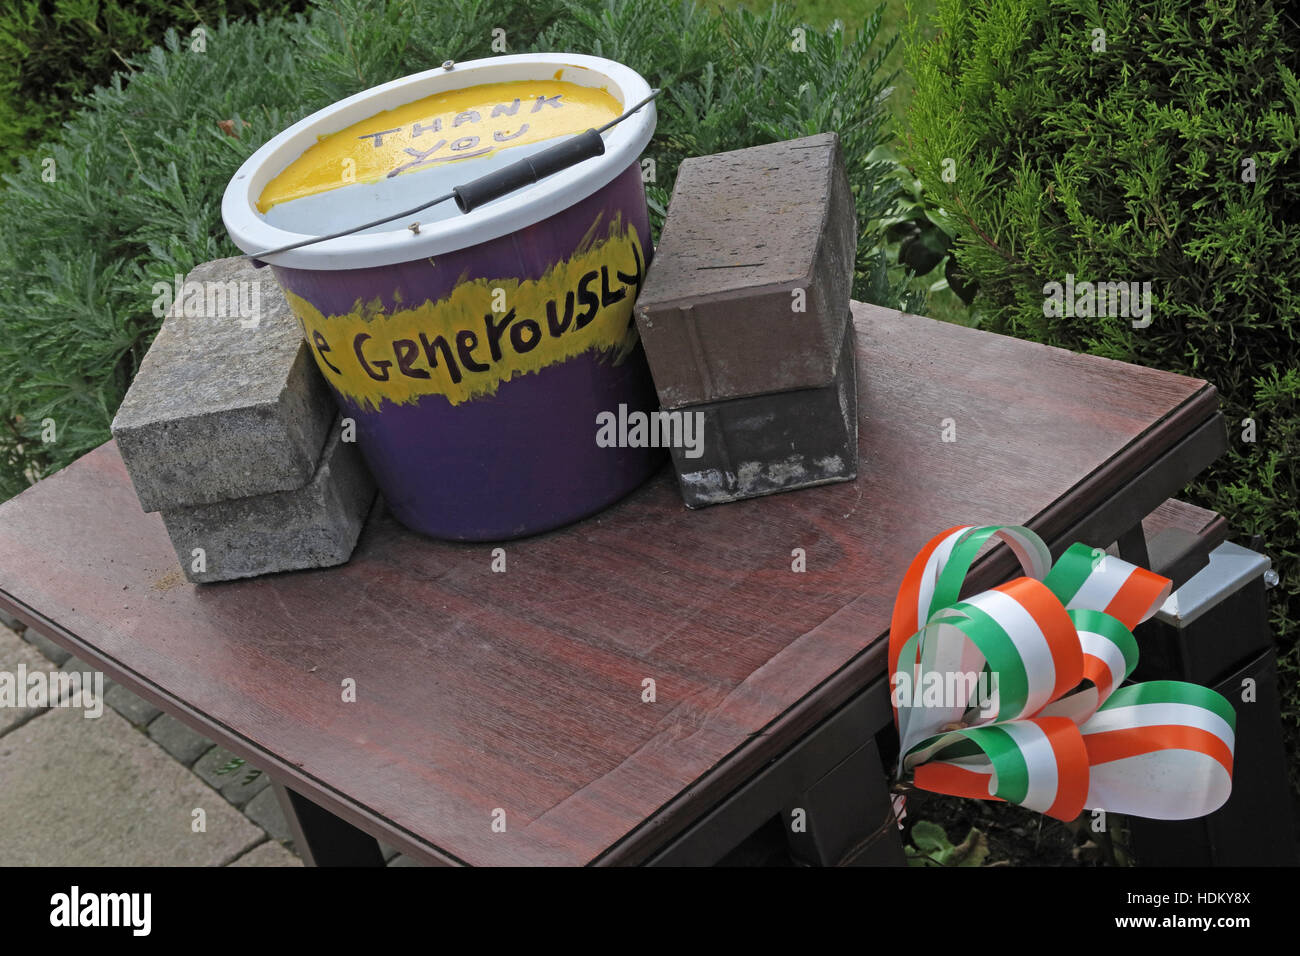 Donation,donations,bucket,for,Falls road,West Belfast,Belfast,West,Northern Ireland,UK,Iris,Community,Republican,Republicans,fund,funding,IRA,Sinn Fein,ribbon,flag,flags,tricolor,tricolour,tin for donations,Irish Flag,GoTonySmith,@HotpixUK,Tony,Smith,UK,GB,Great,Britain,United,Kingdom,Irish,British,Ireland,problem,with,problem with,issue with,NI,Northern,Northern Ireland,Belfast,City,Centre,Art,Artists,the,troubles,The Troubles,Good Friday Agreement,Peace,honour,painting,wall,walls,tribute,republicanism,Fight,Justice,West,Beal,feirste,martyrs,social,tour,tourism,tourists,urban,six,counties,6,backdrop,county,Antrim,national flag of Ireland,national,flag,of,Ireland,Irish tricolour,ensign,green,white,orange,Buy Pictures of,Buy Images Of,Images of,Stock Images,Tony Smith,United Kingdom,Great Britain,British Isles